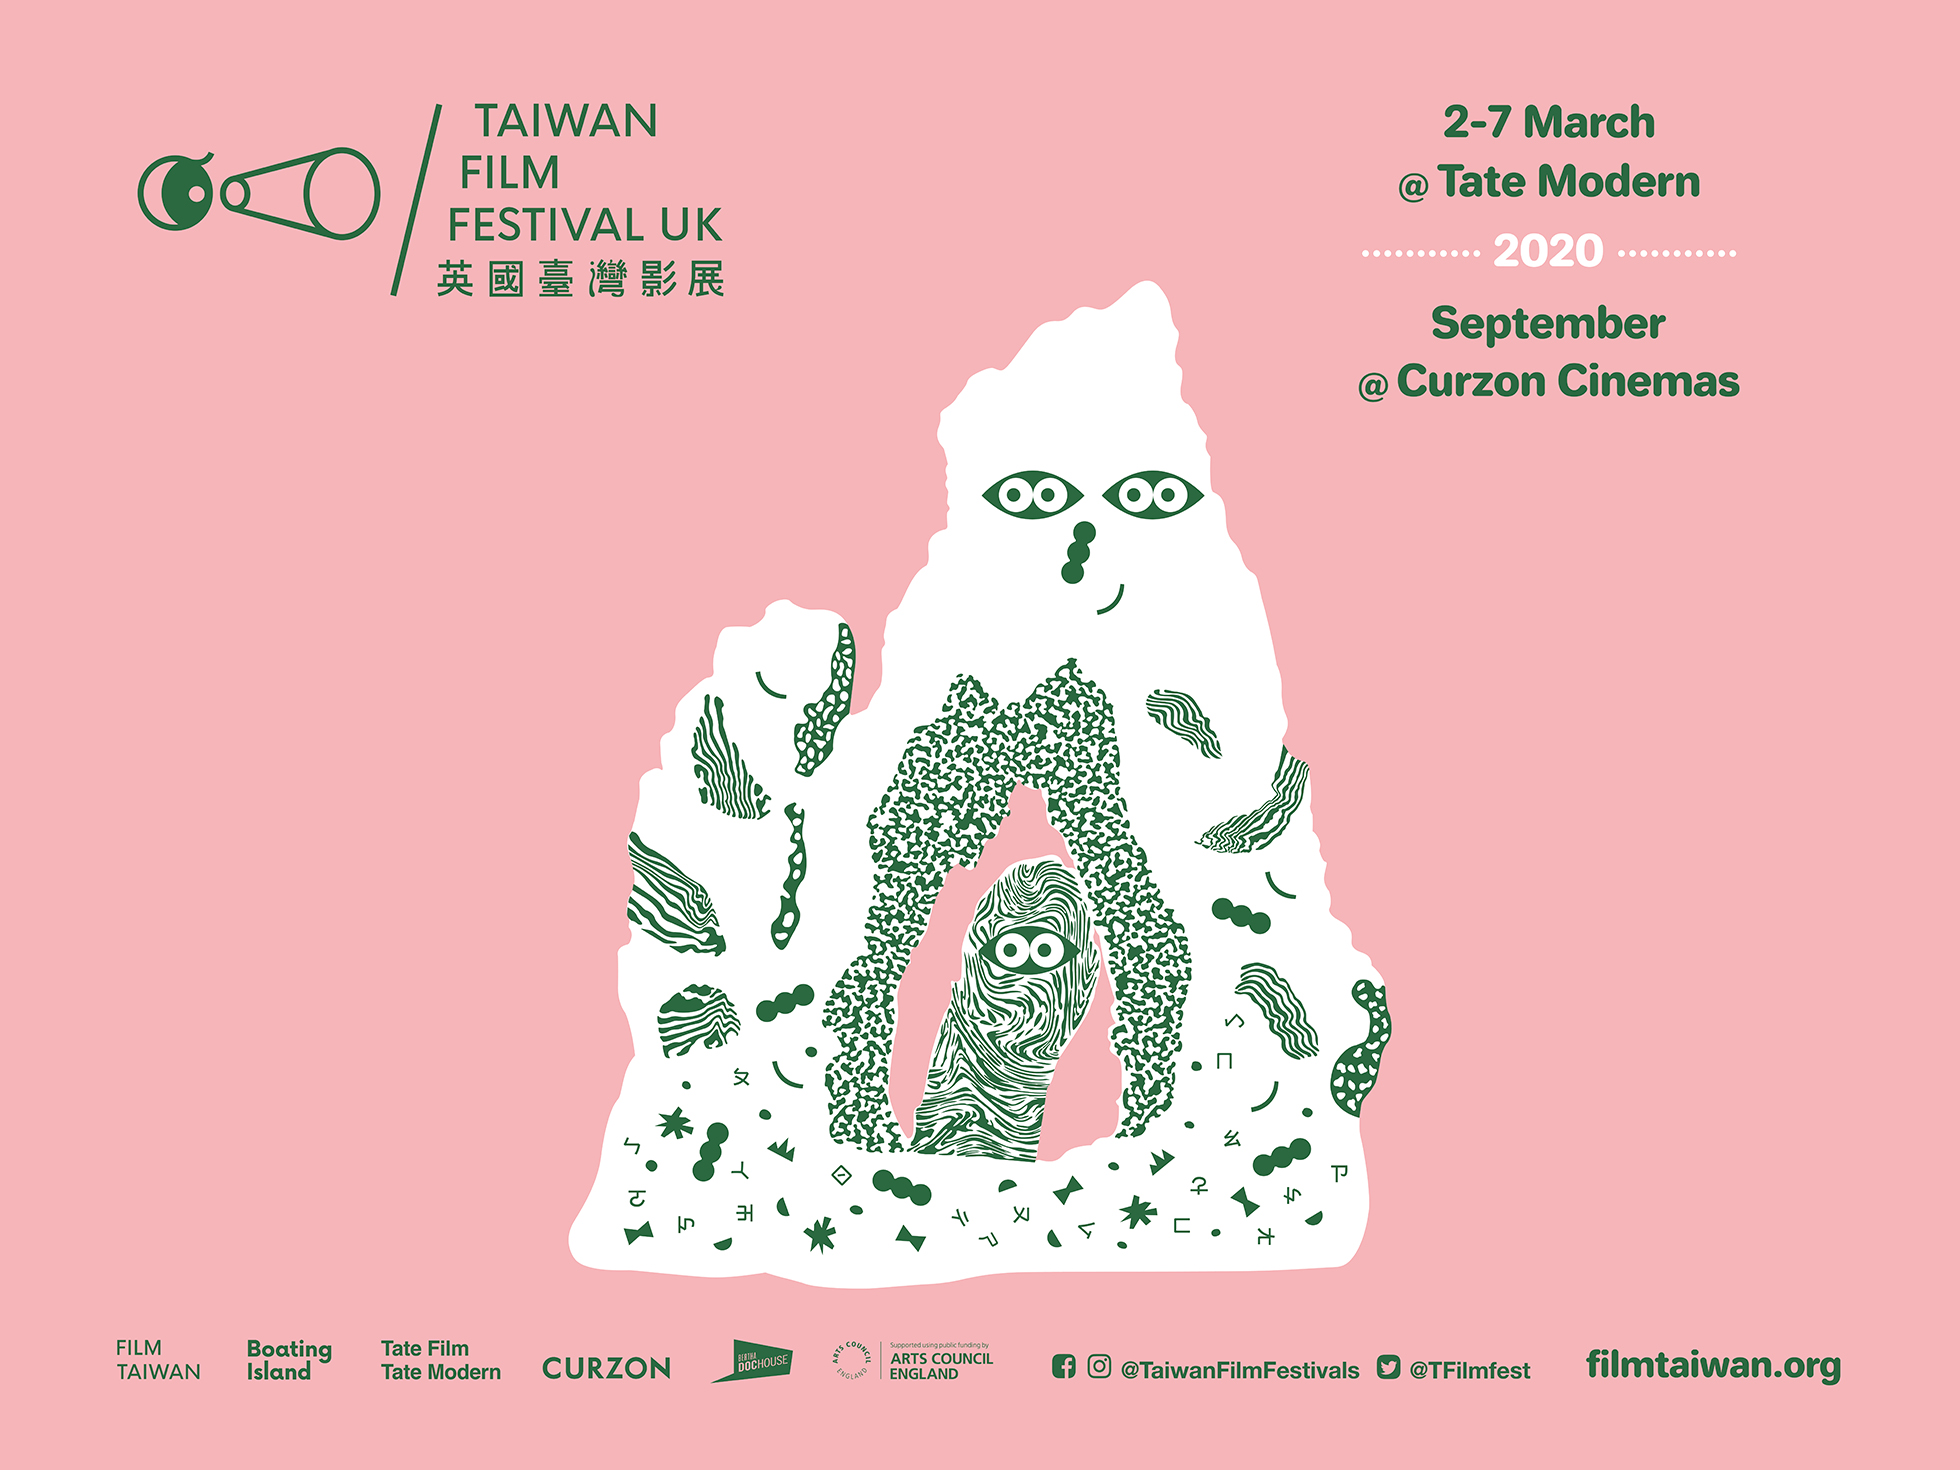 Taiwan Film Festival UK opens in March with Chen Chieh-jen program